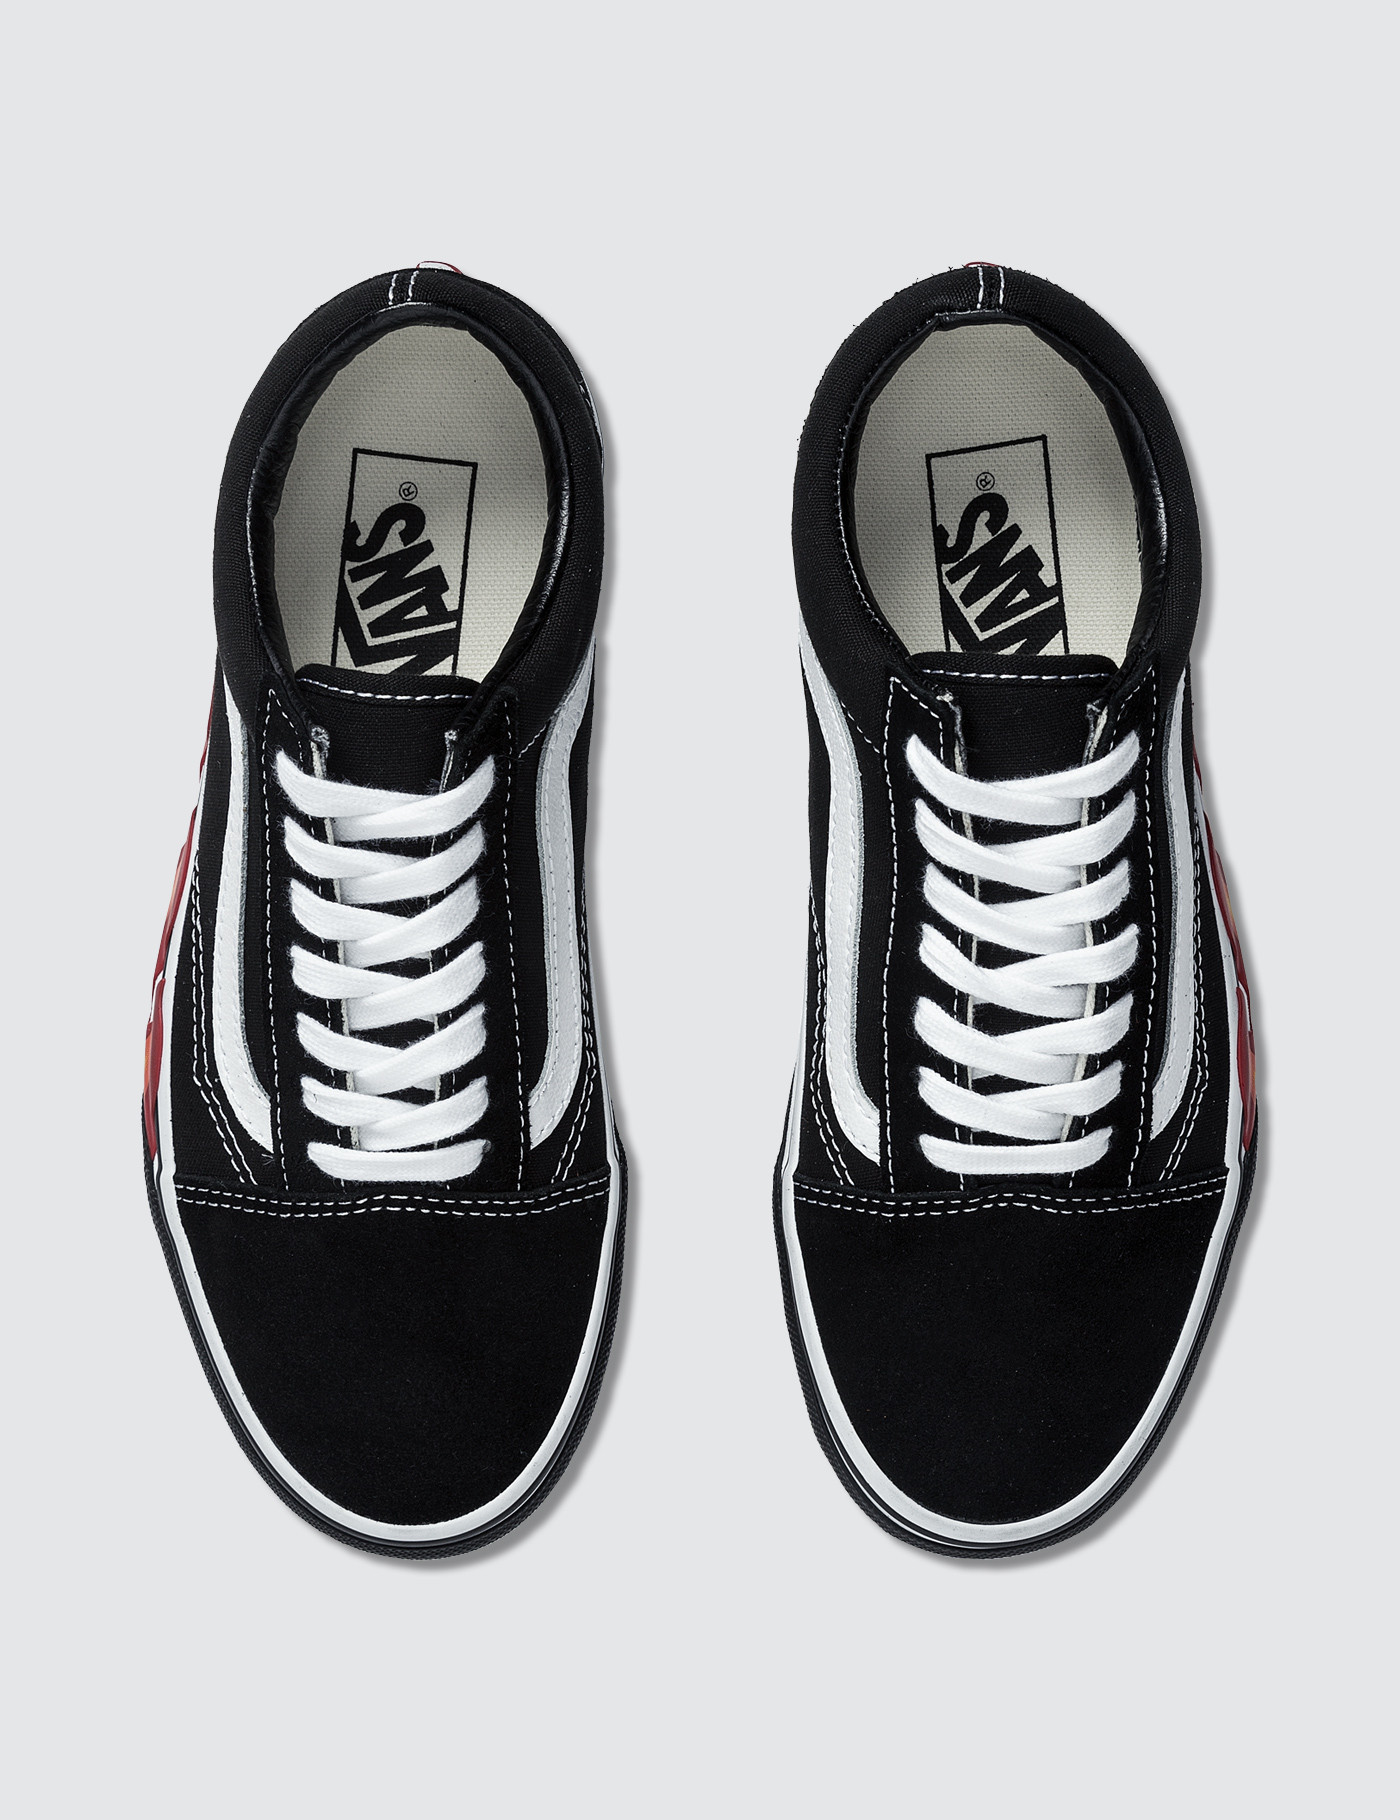 fa8a39d5e4f Buy Original Vans Flame Cut Out Old Skool at Indonesia